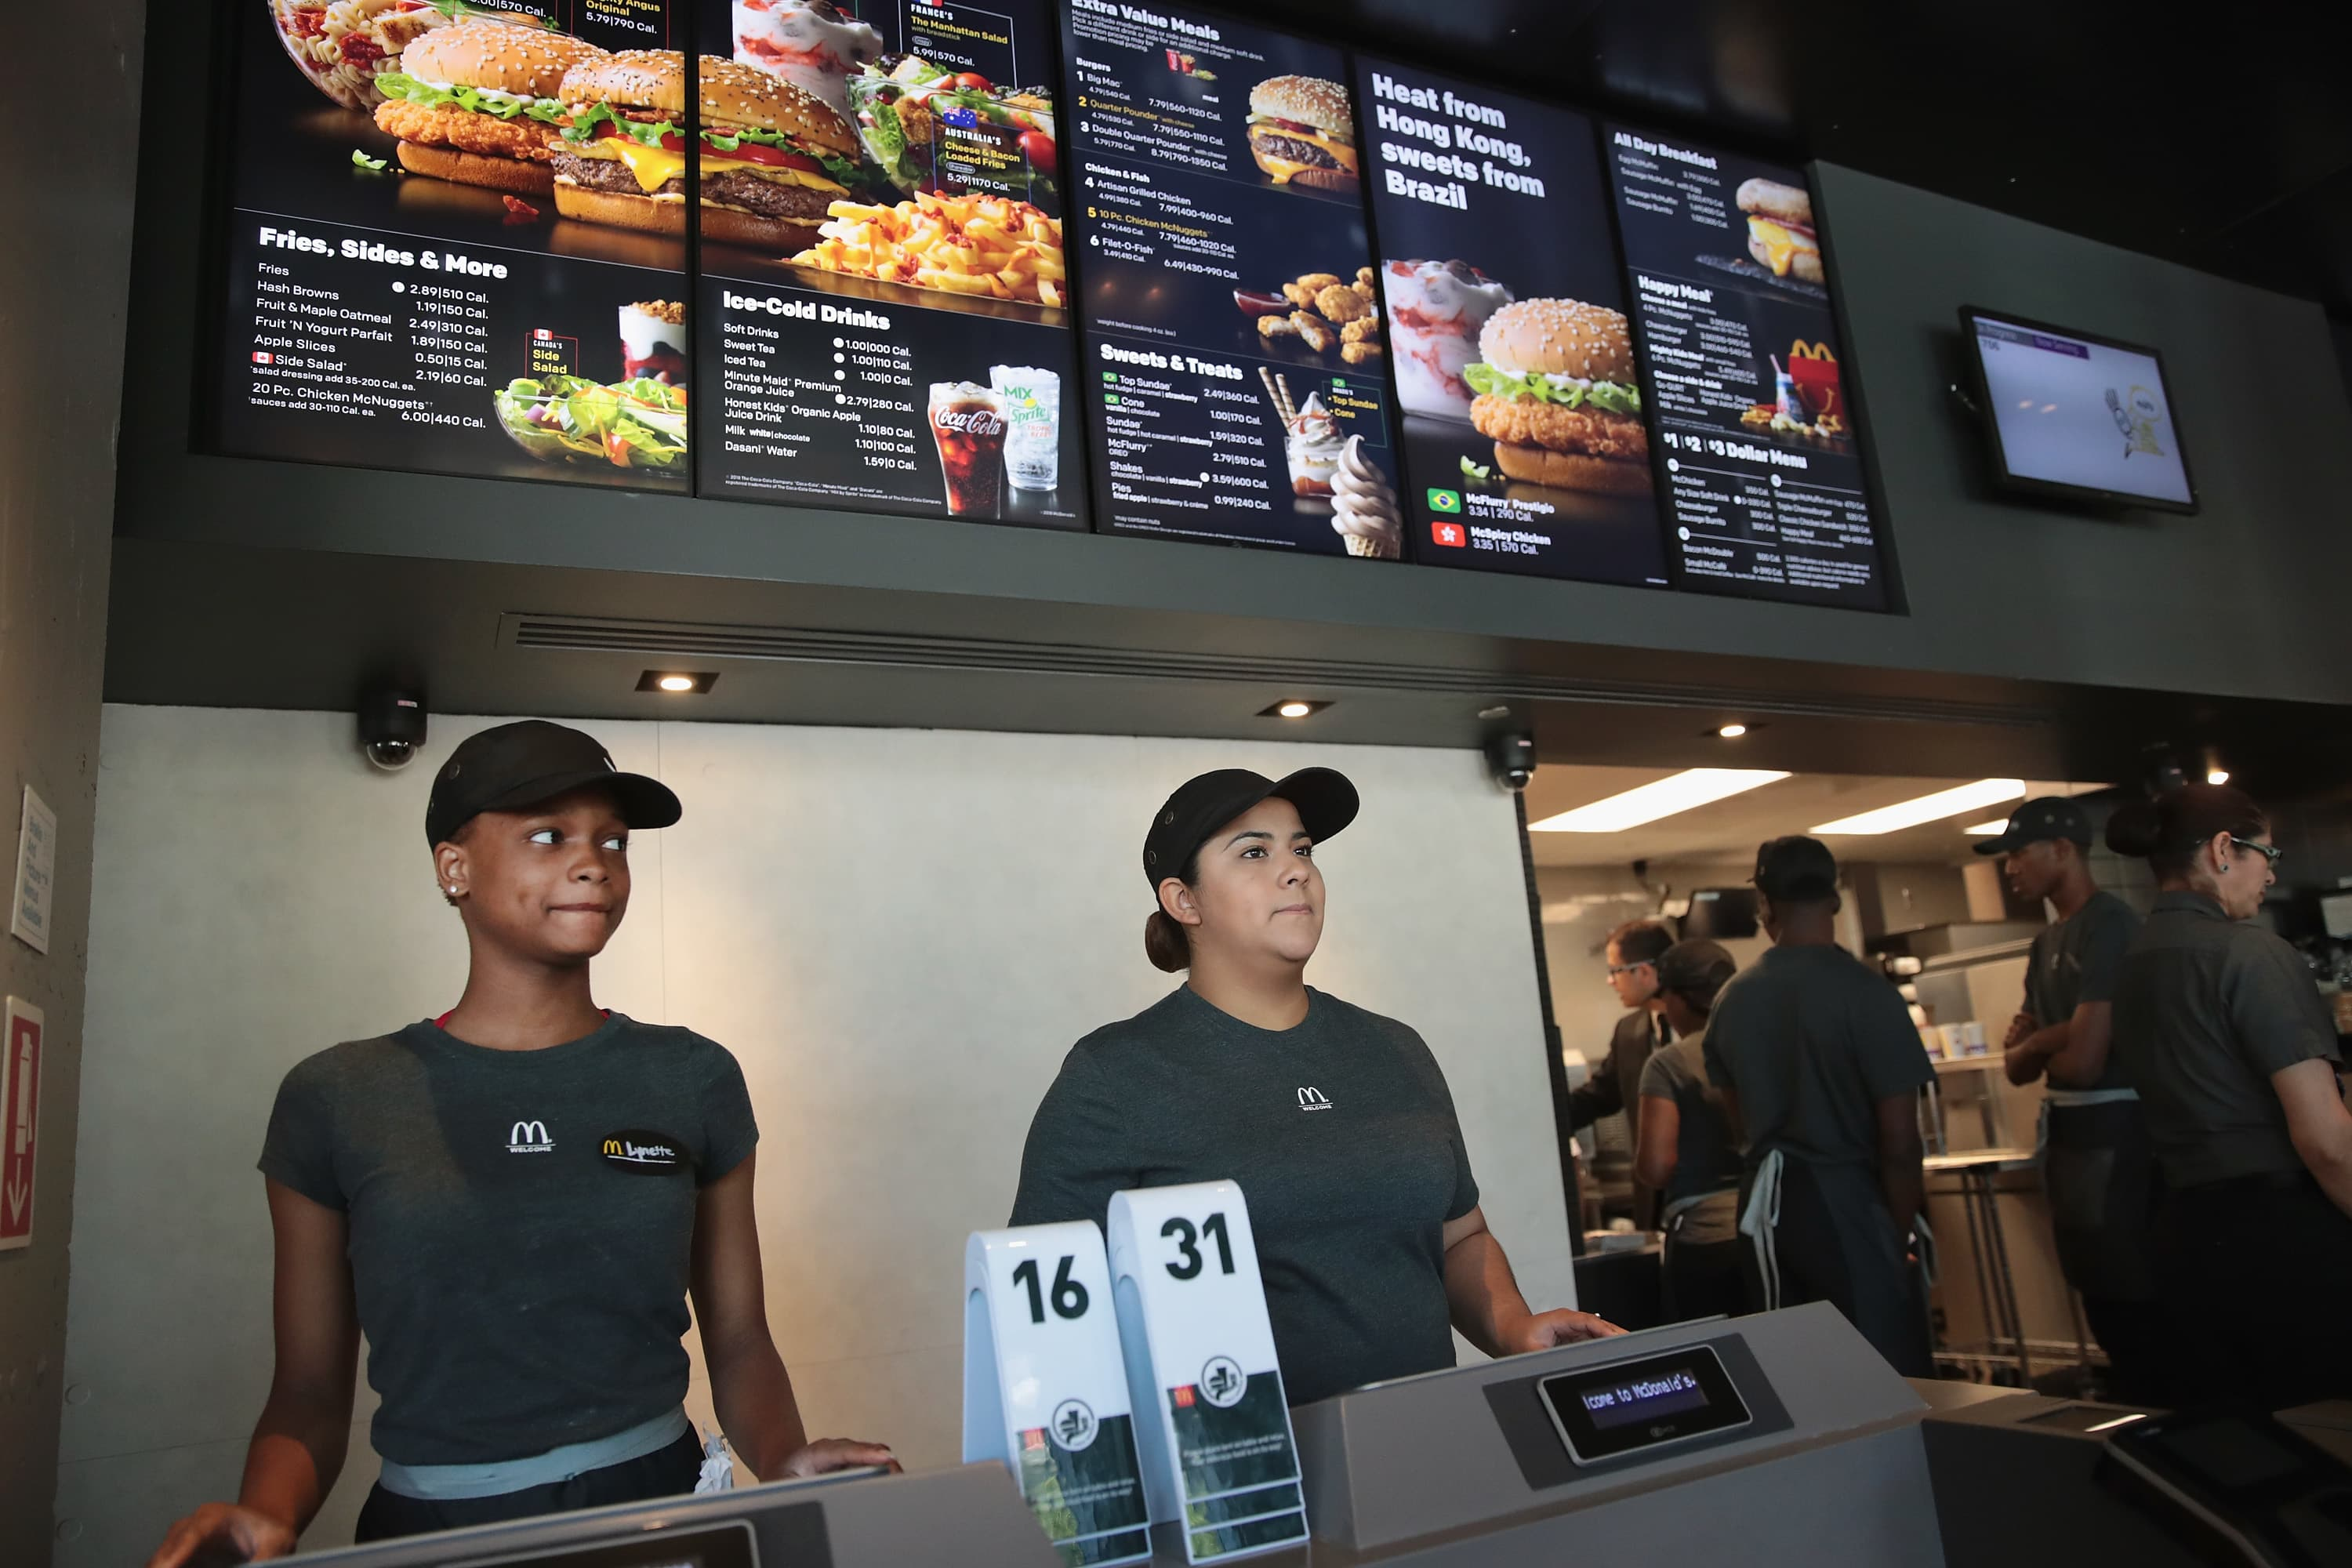 What McDonald's minimum wage raise says about fast-food franchise future